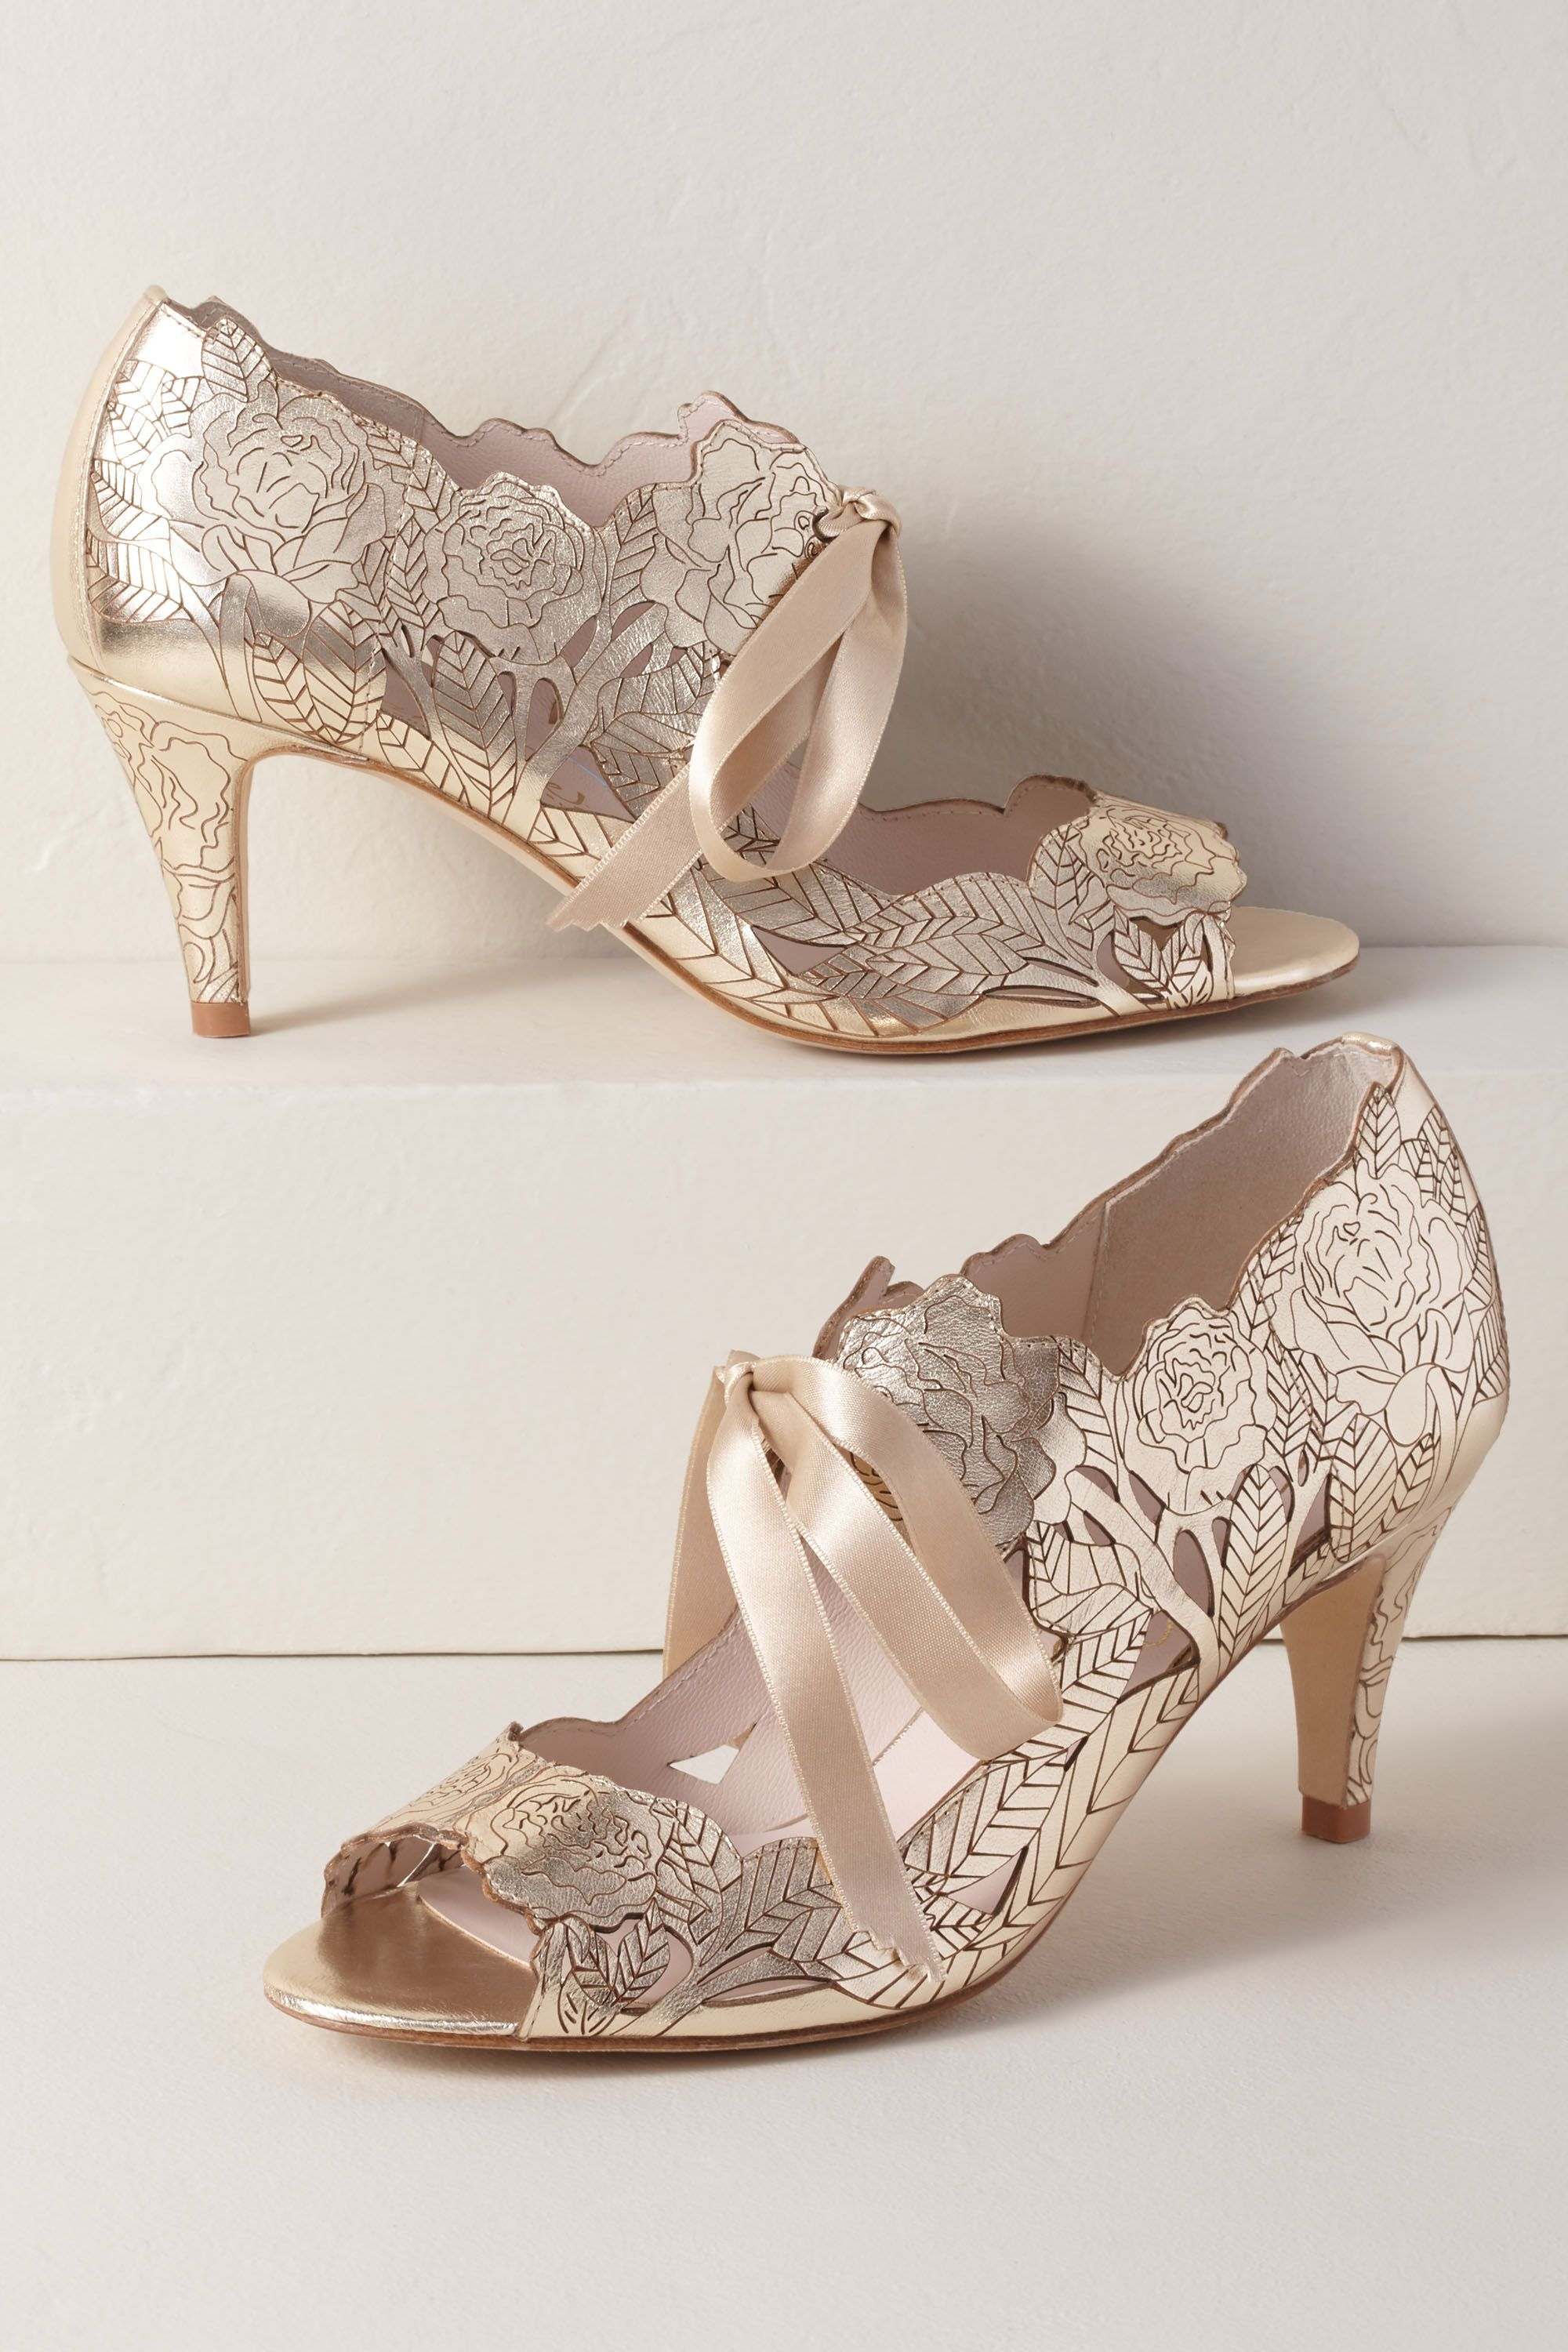 3e5dd950d57b BHLDN s Harriet Wilde Harriet Wilde Peony Heels in Gold in 2019 ...